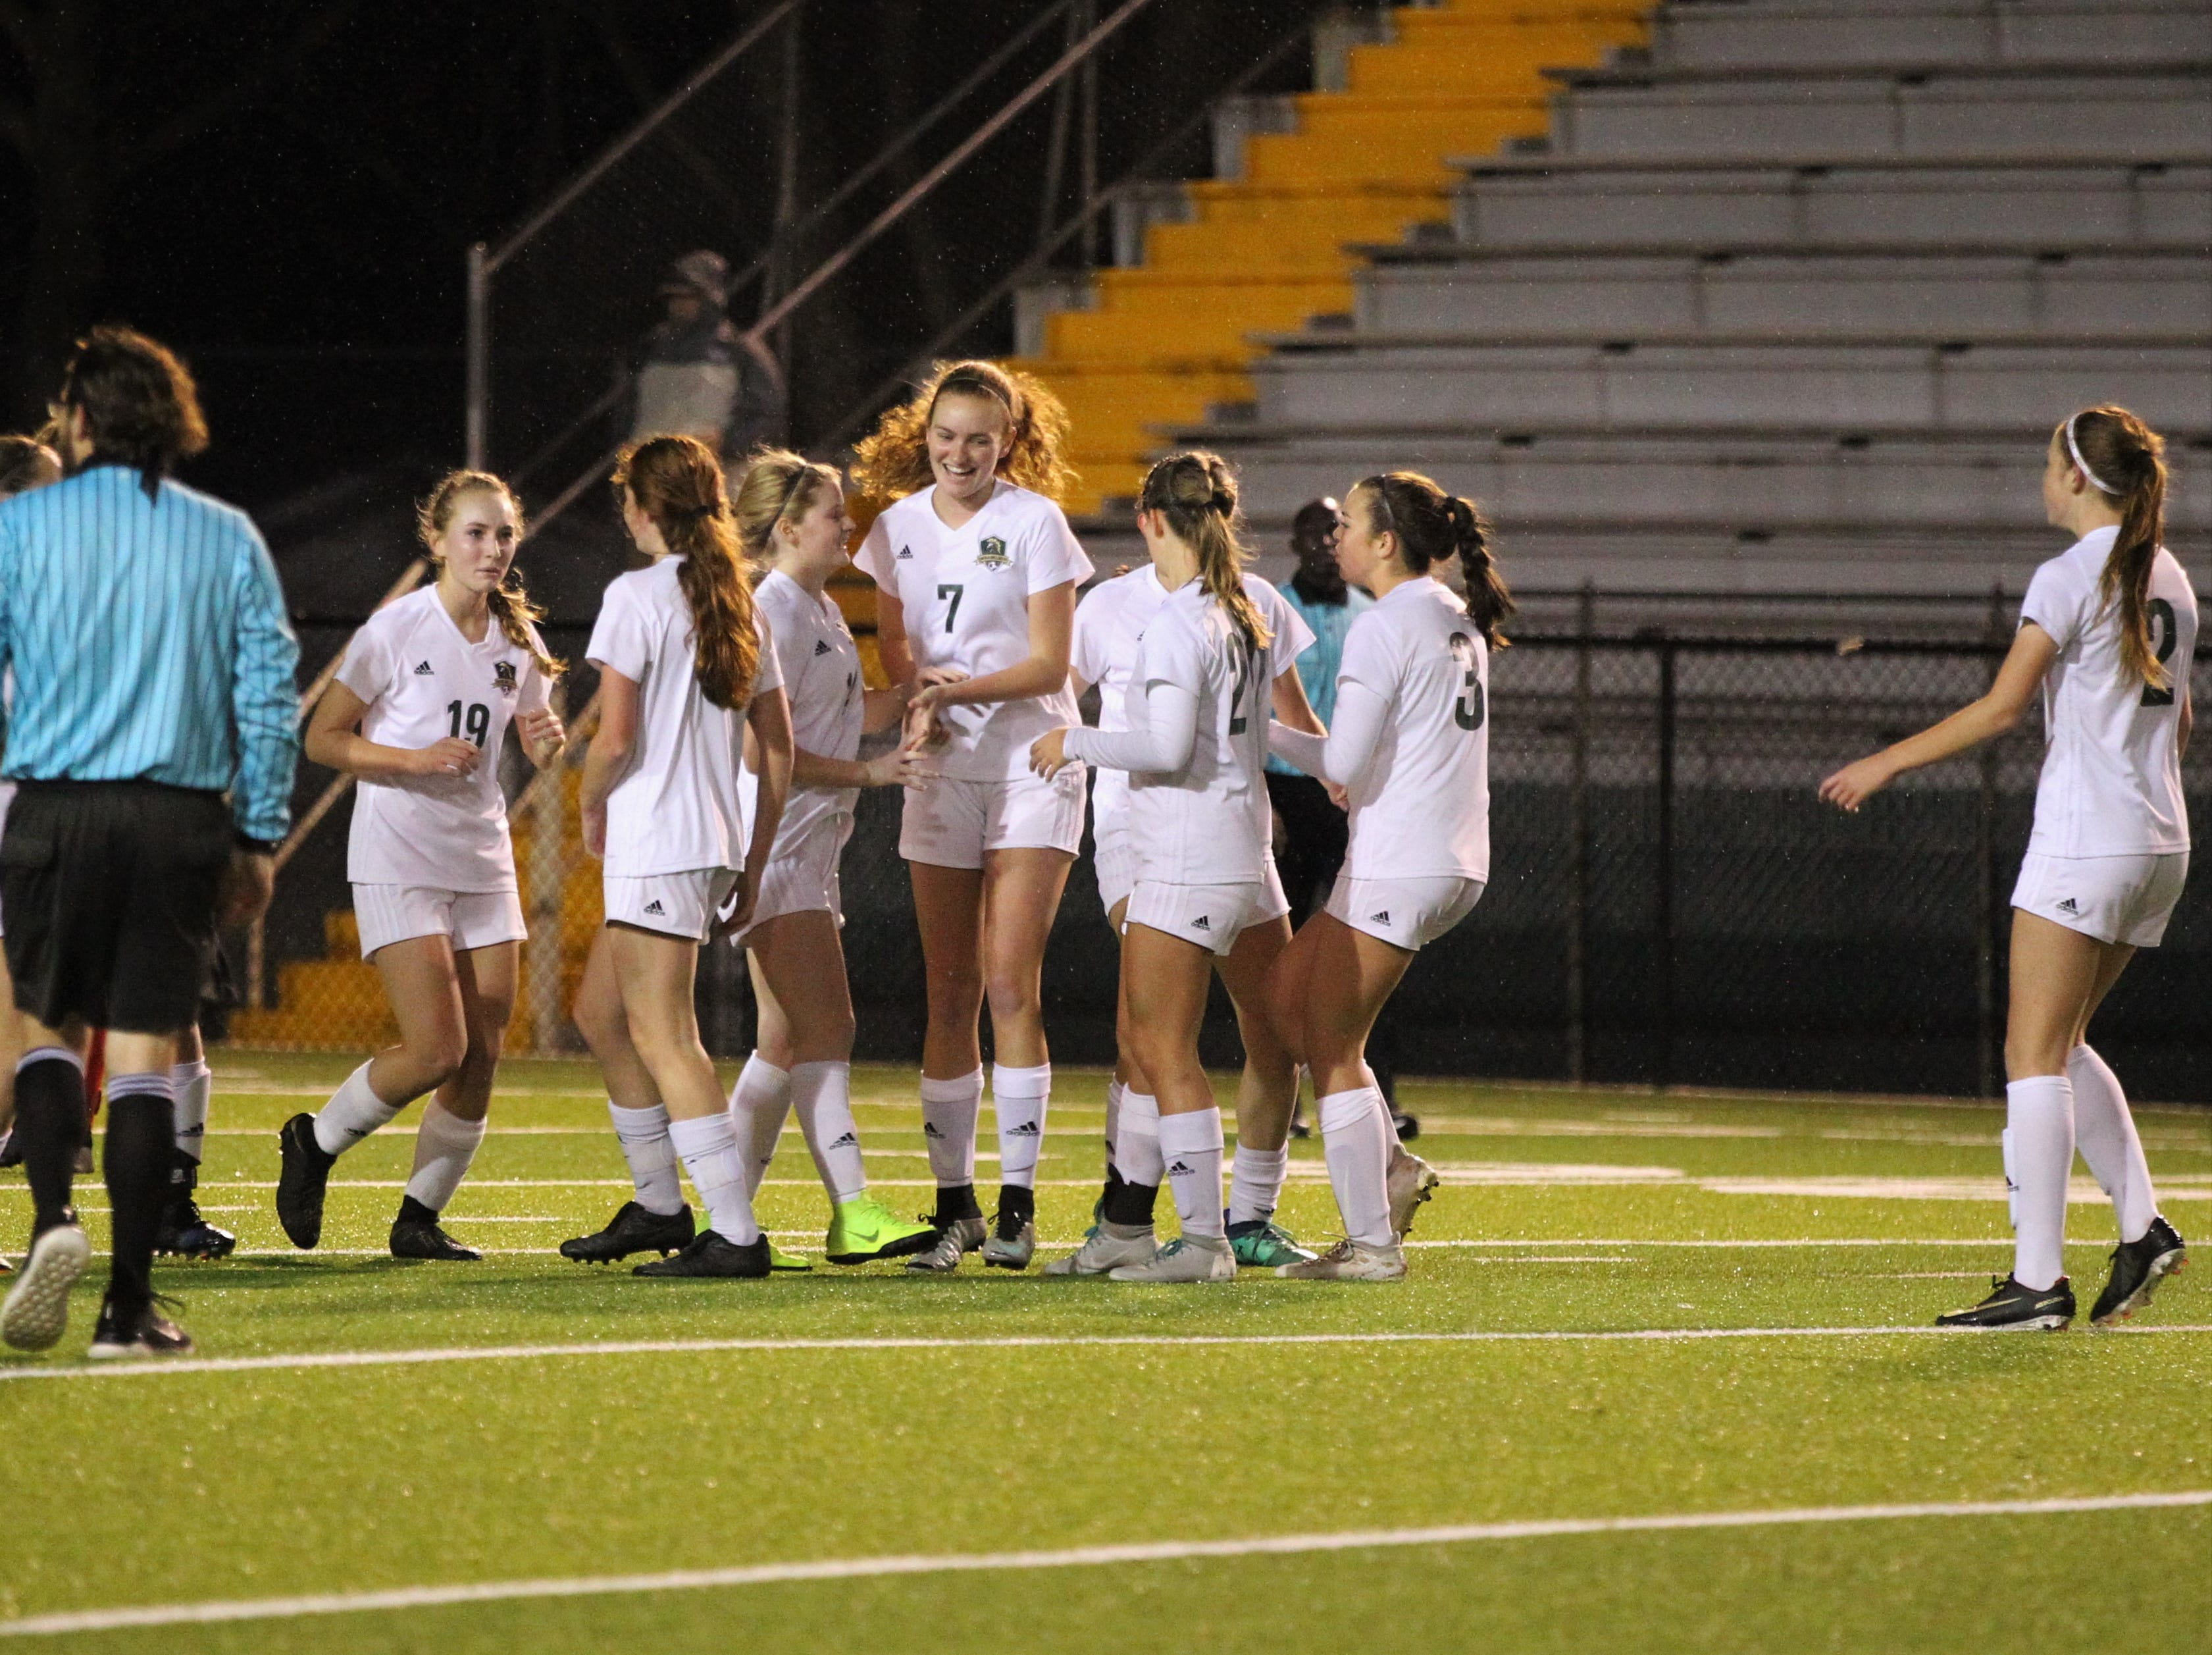 Lincoln's girls soccer team celebrates an early, unexpected fluke goal, but Leon rallied to beat Lincoln in the District 2-4A championship on Feb. 1, 2019.